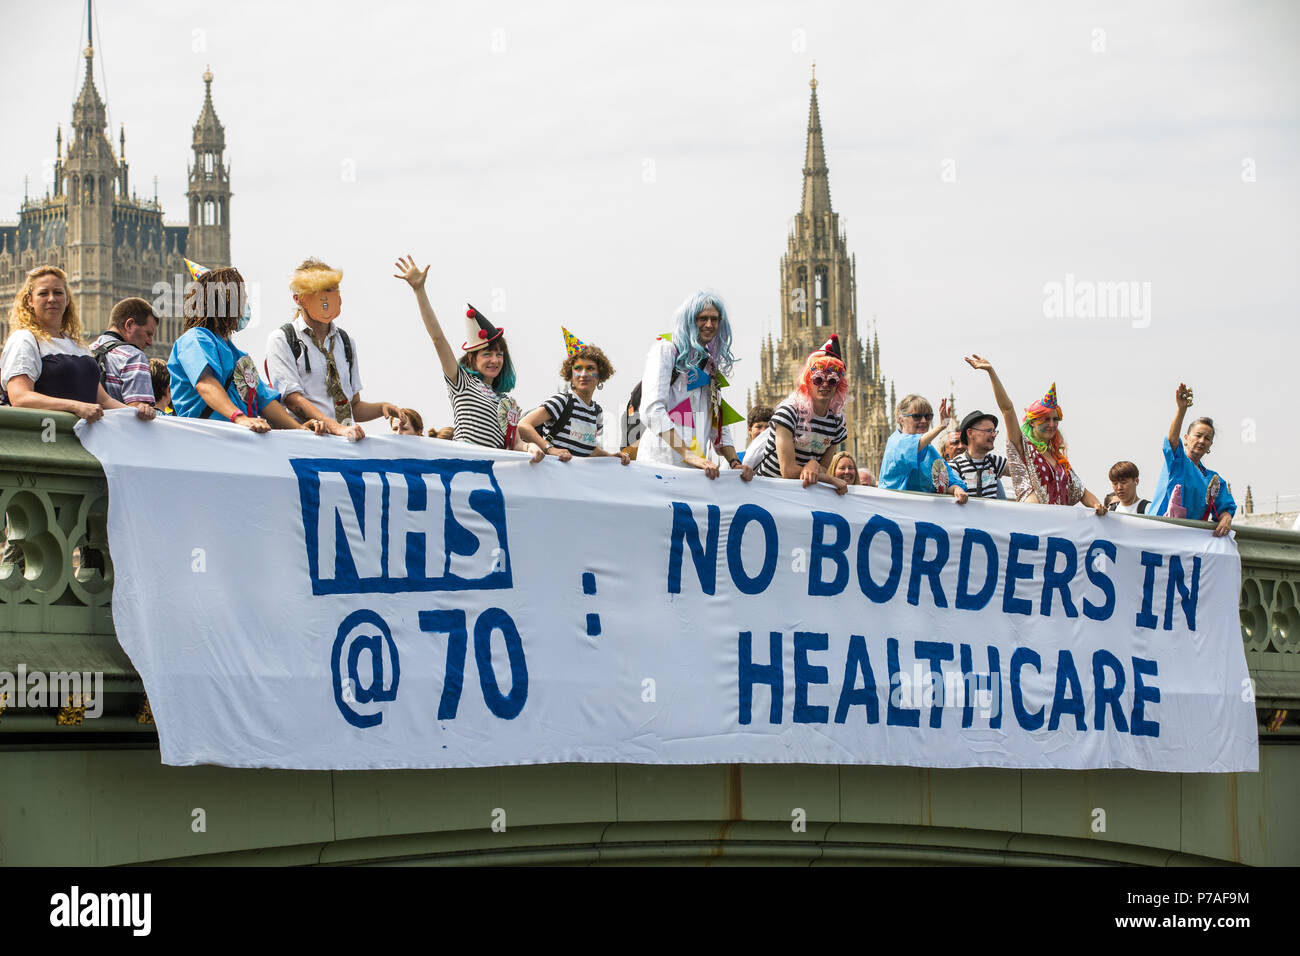 London, UK. 5th July, 2018. Activists from Docs Not Cops and the NHS Anti-Swindle Team drop a banner from Westminster Bridge reading 'NHS@70: No Borders in Healthcare' on the 70th birthday of the National Health Service. Docs Not Cops is a group comprising doctors, nurses, HIV activists, students, teachers and laypeople who believe that health care is a human right and are opposed to government policies which might make anyone fear visiting a doctor for reasons of cost or immigration status. Credit: Mark Kerrison/Alamy Live News - Stock Image